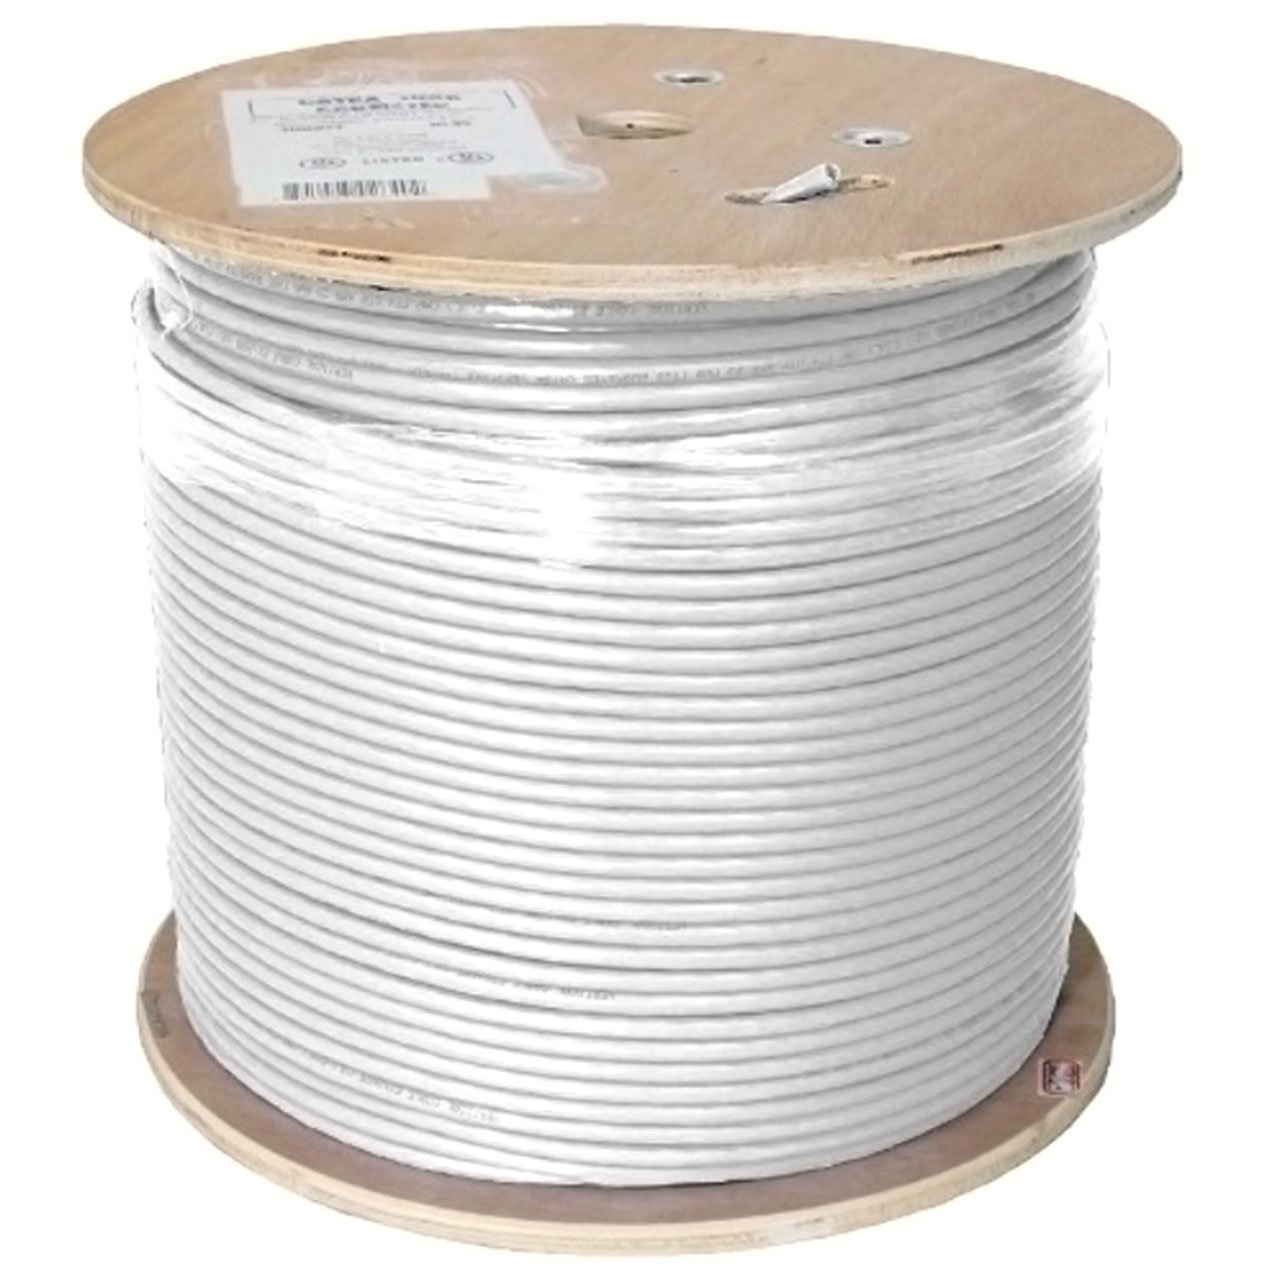 Delicate Vertical Cable Cat6a 10g Utp 23awg Solid Bare Copper Electrical Wire And Pvc